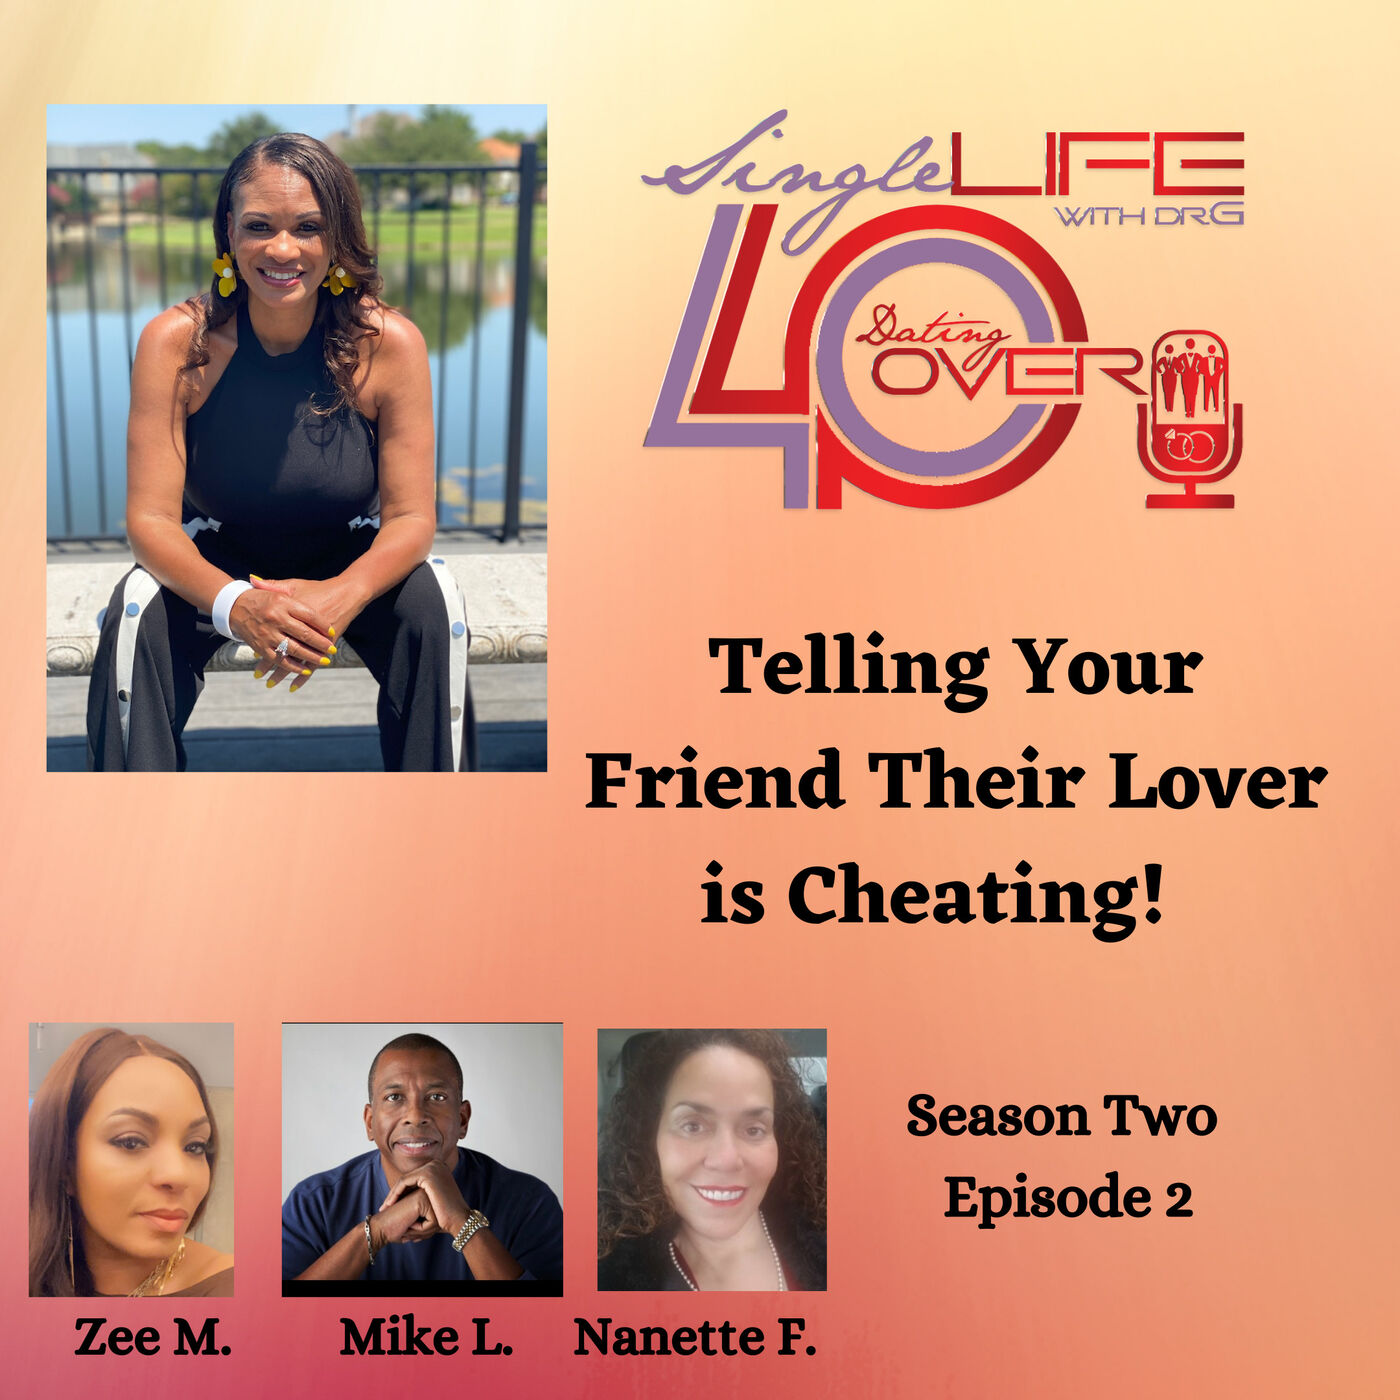 Telling Your Friend Their Lover is Cheating!